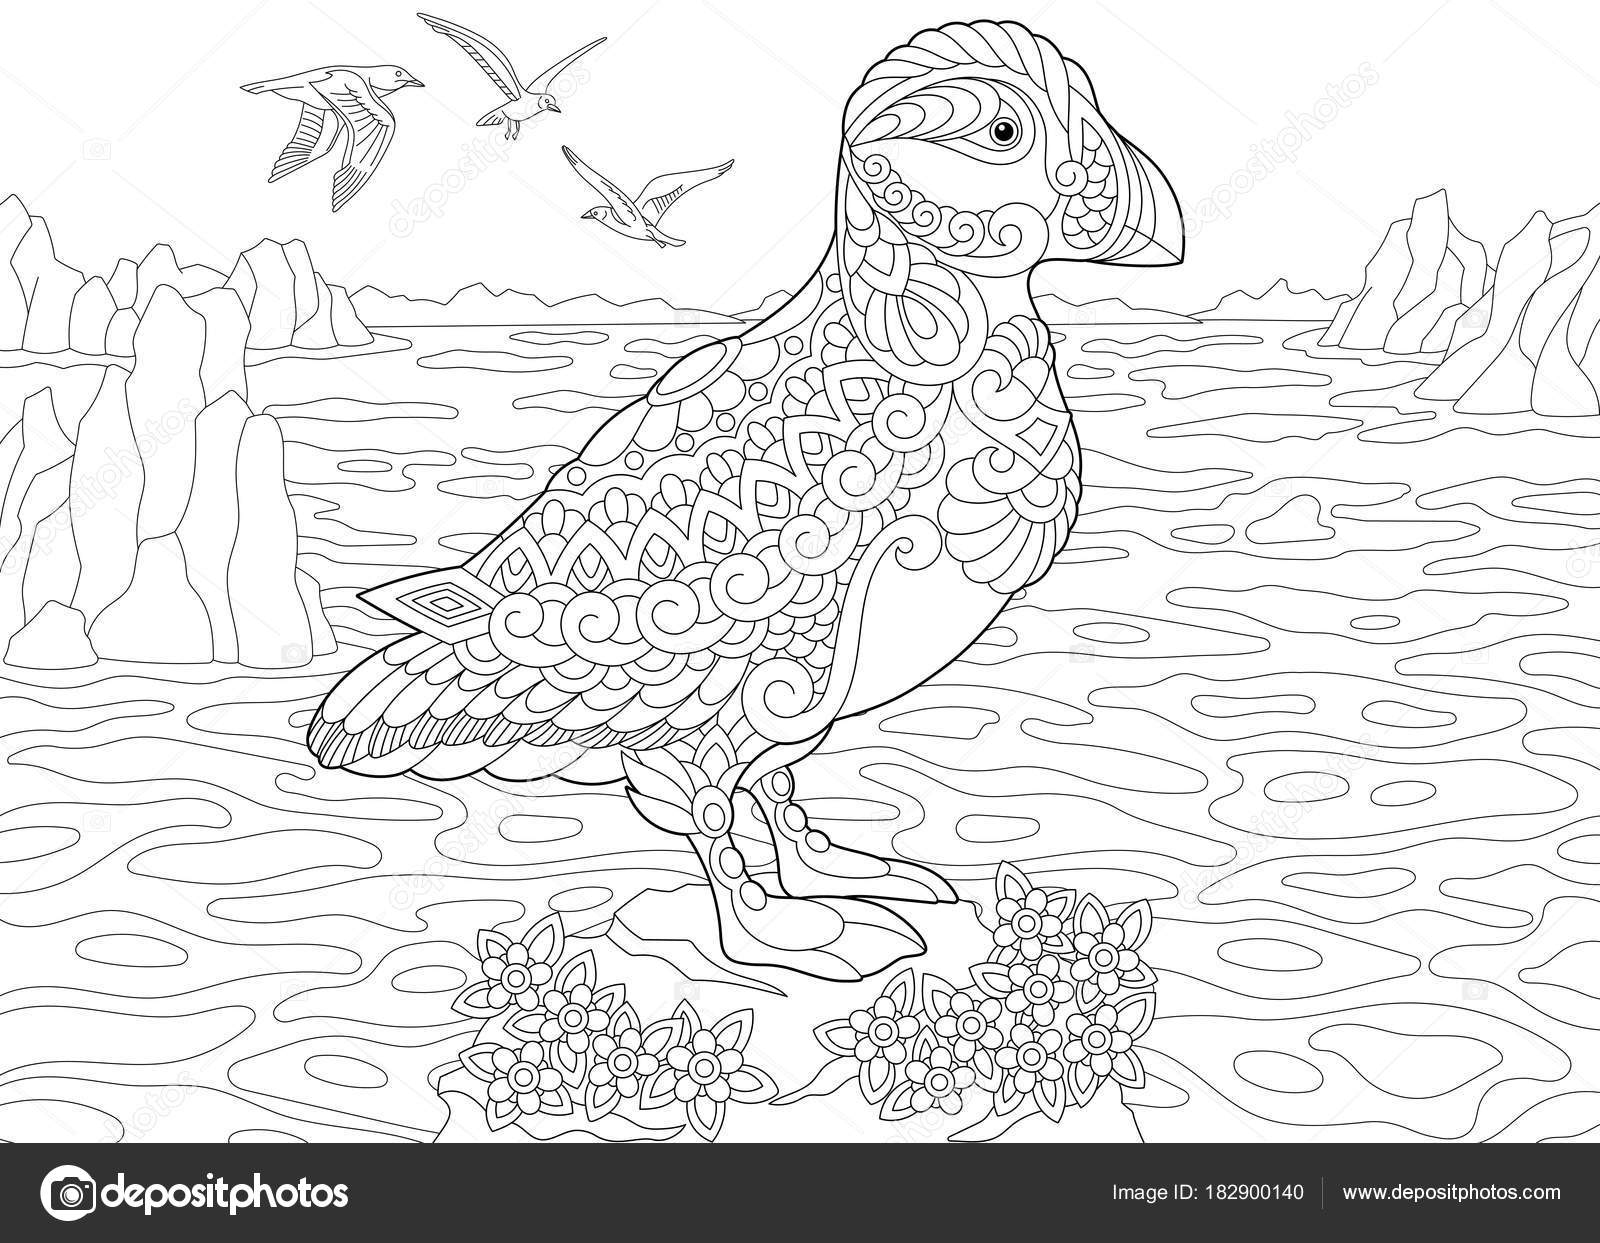 Coloring Page Adult Book Puffin A Hole Nesting Auk Seabird Of Northern And Arctic Waters Antistress Freehand Sketch Drawing With Doodle